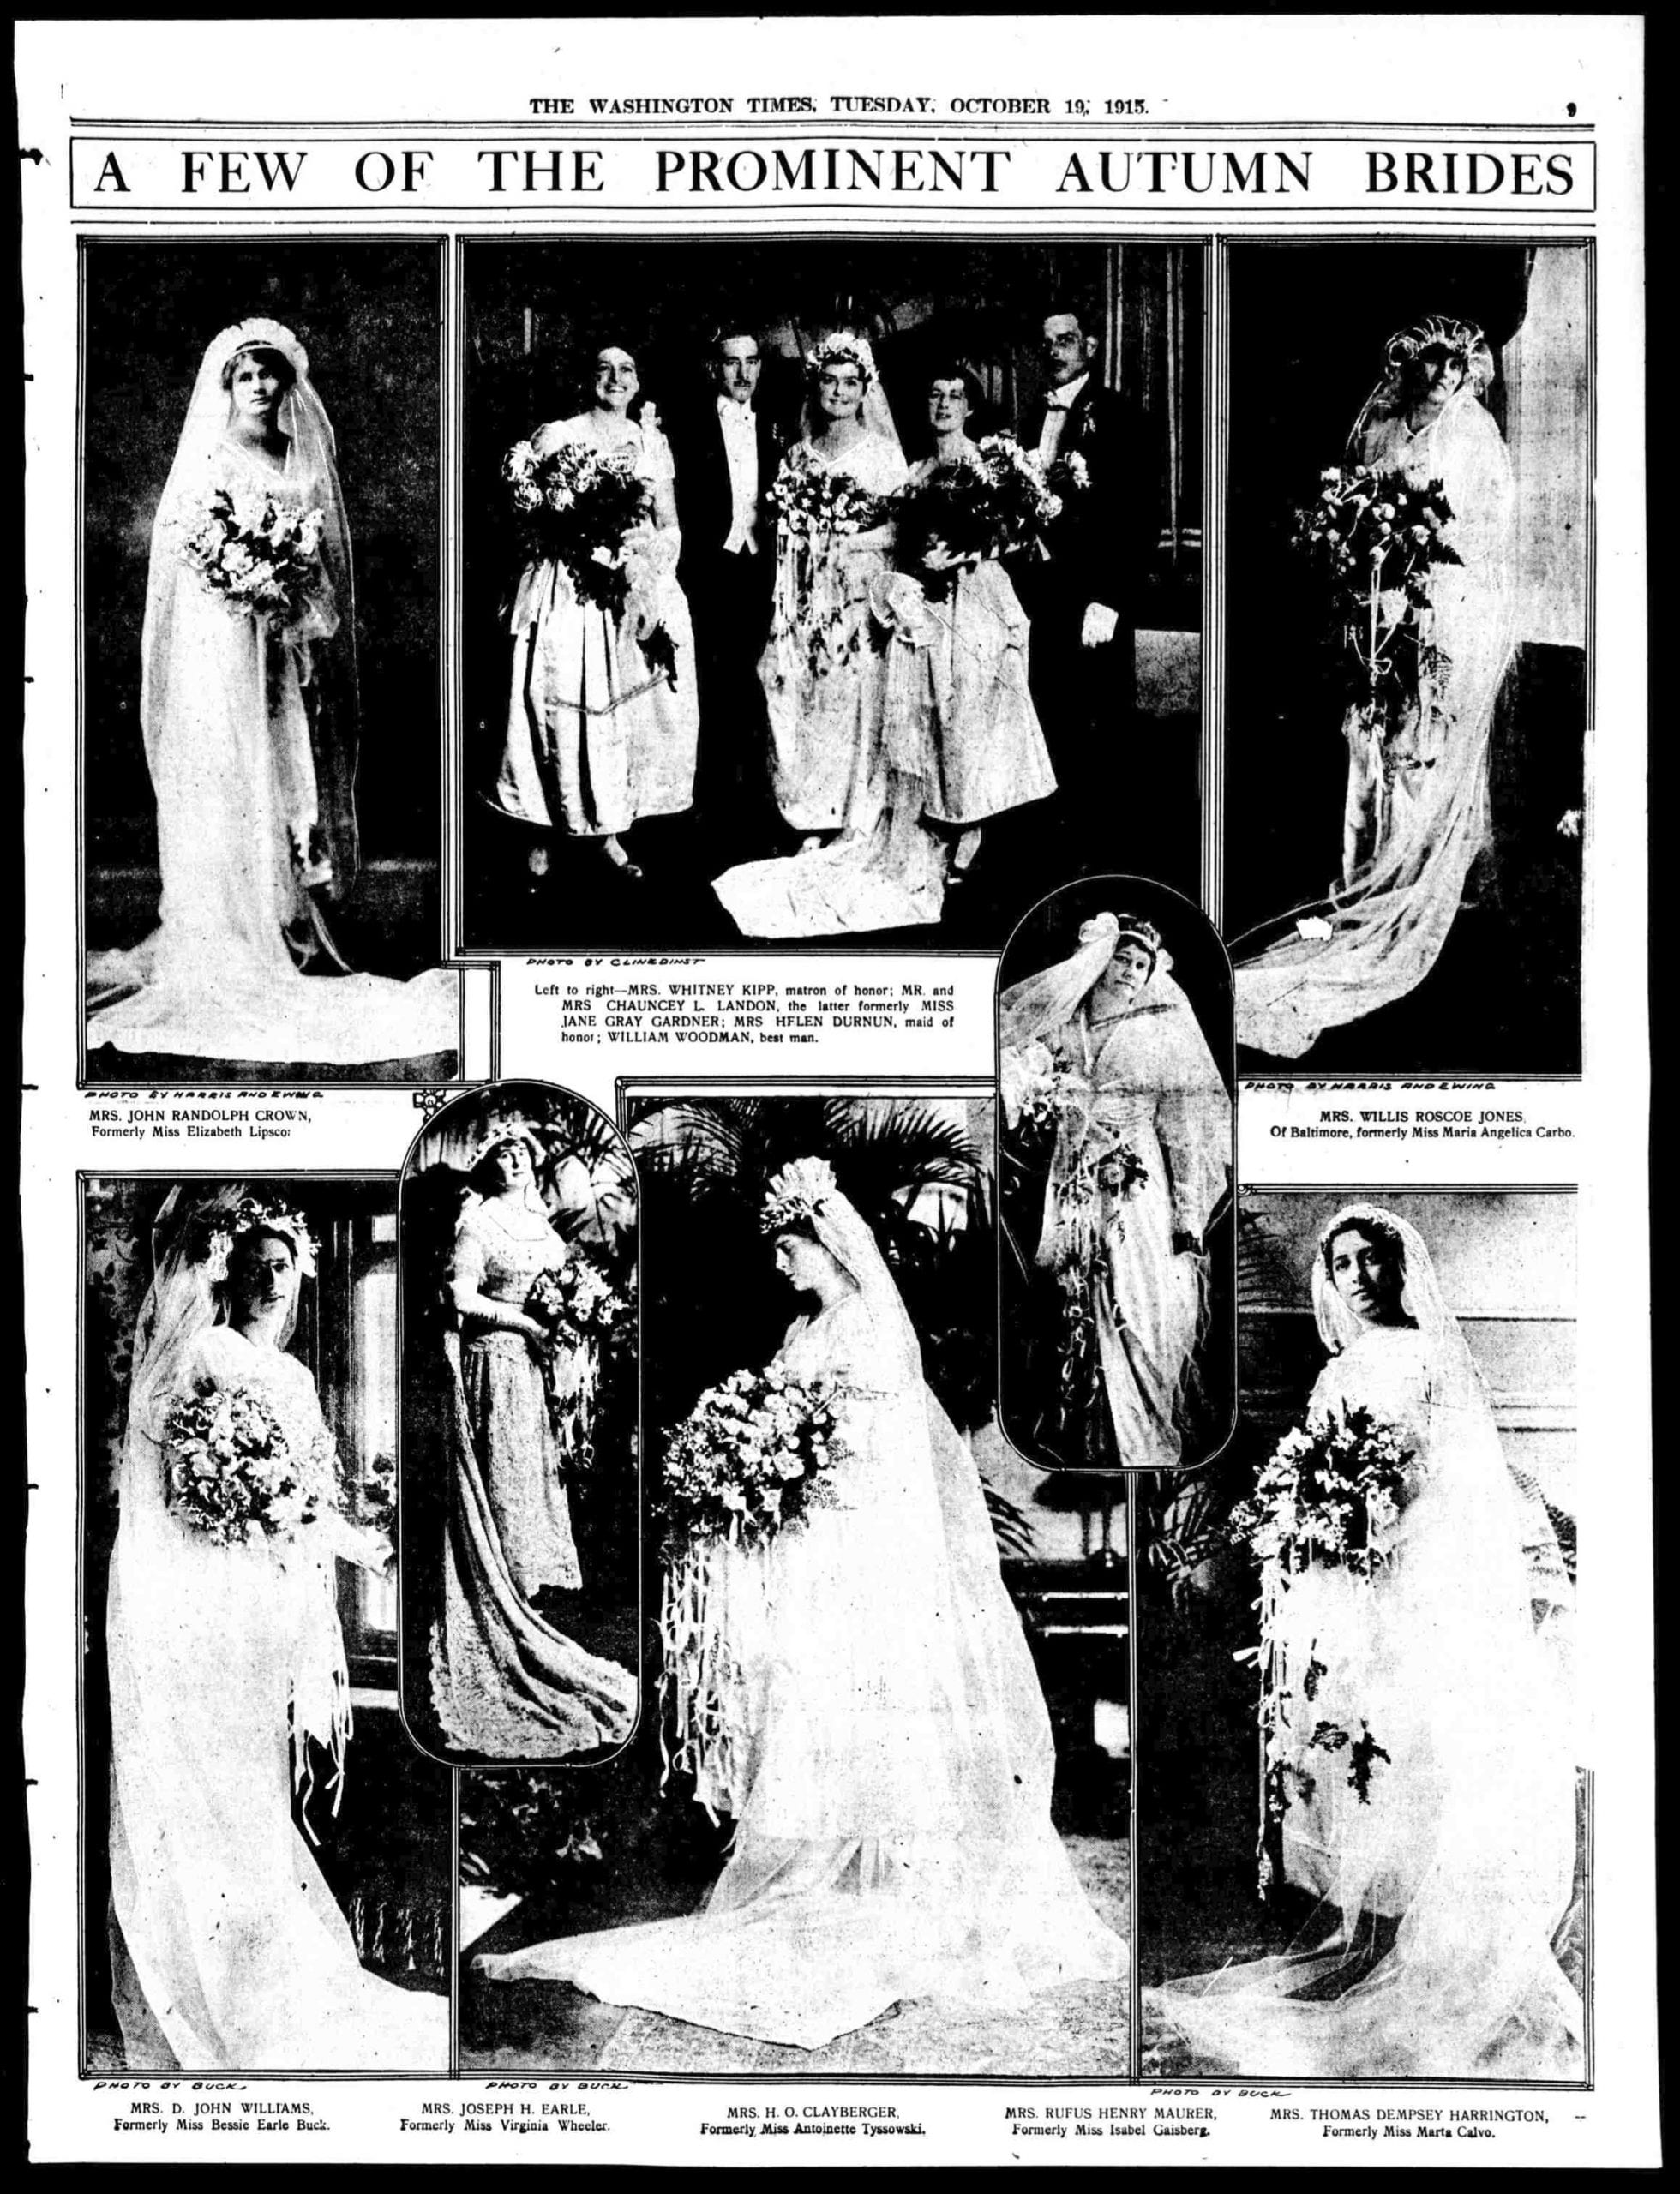 Prominent Washington Fall Brides of 1915